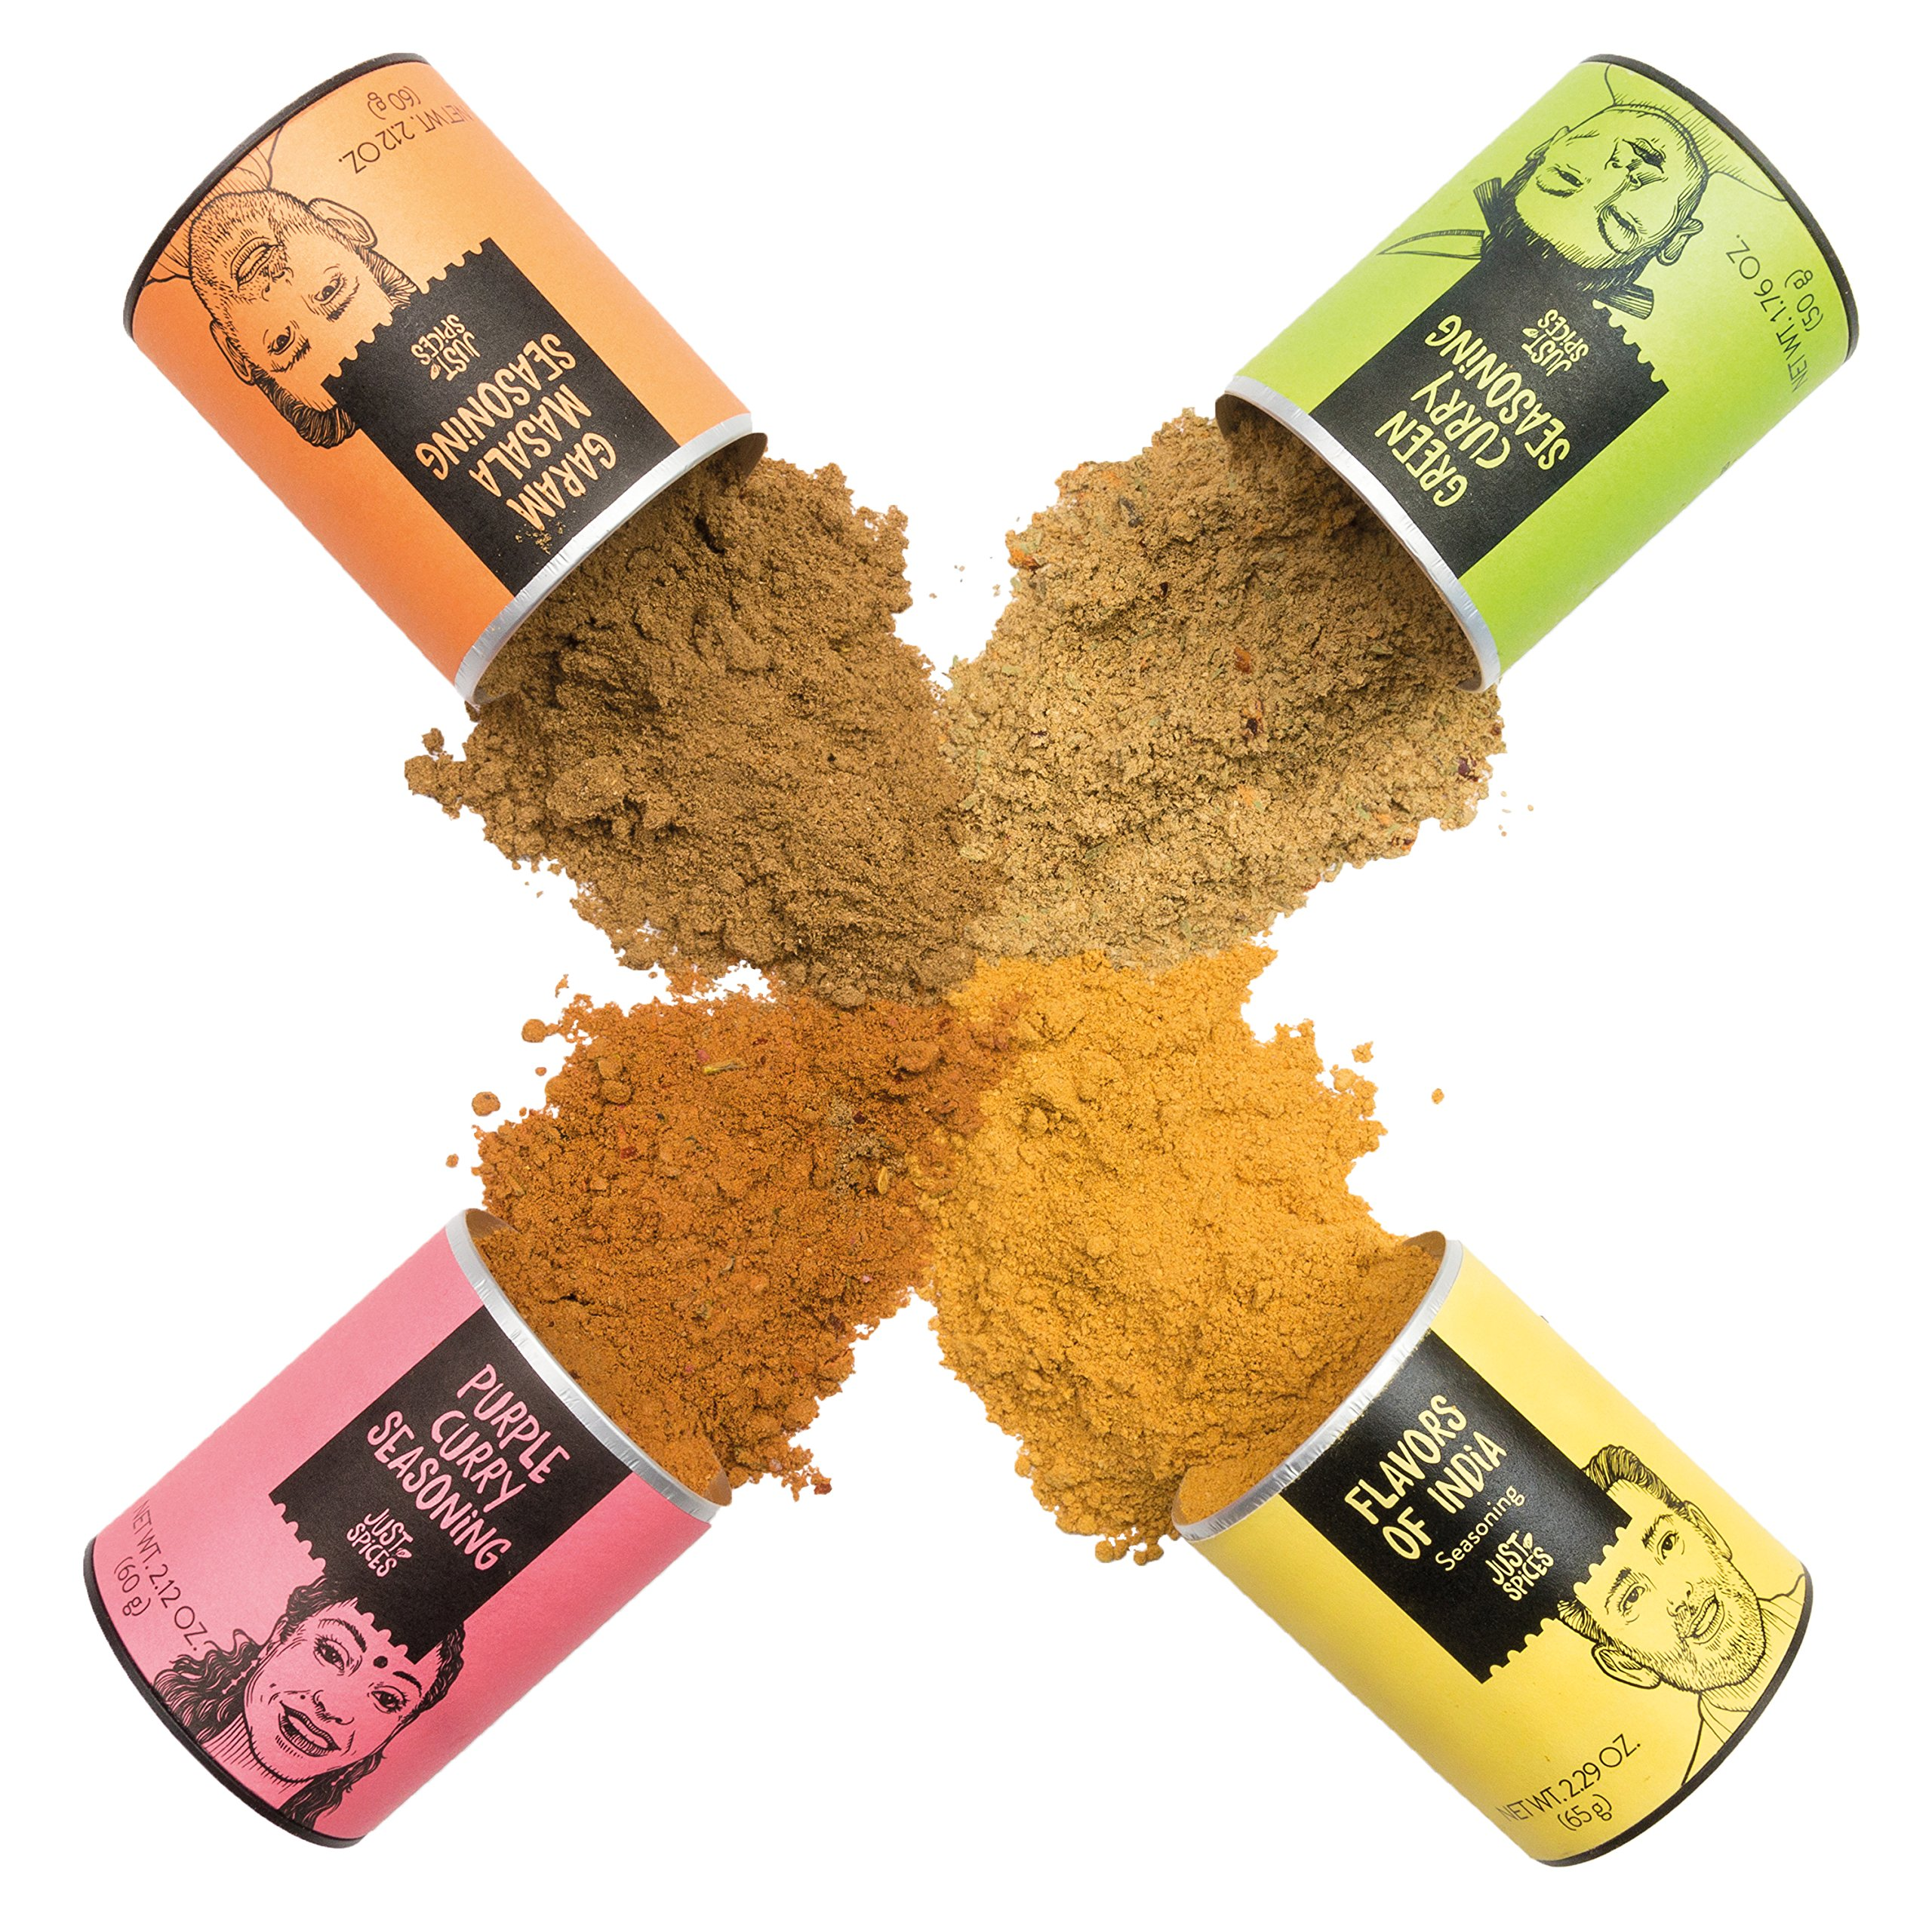 Indian Spices Gift Set | A Variety Box of 4 Essential Seasoning Blends for cooking Indian Food | Including Purple and Green Curry - Garam Masala and the all-rounder Flavors of India